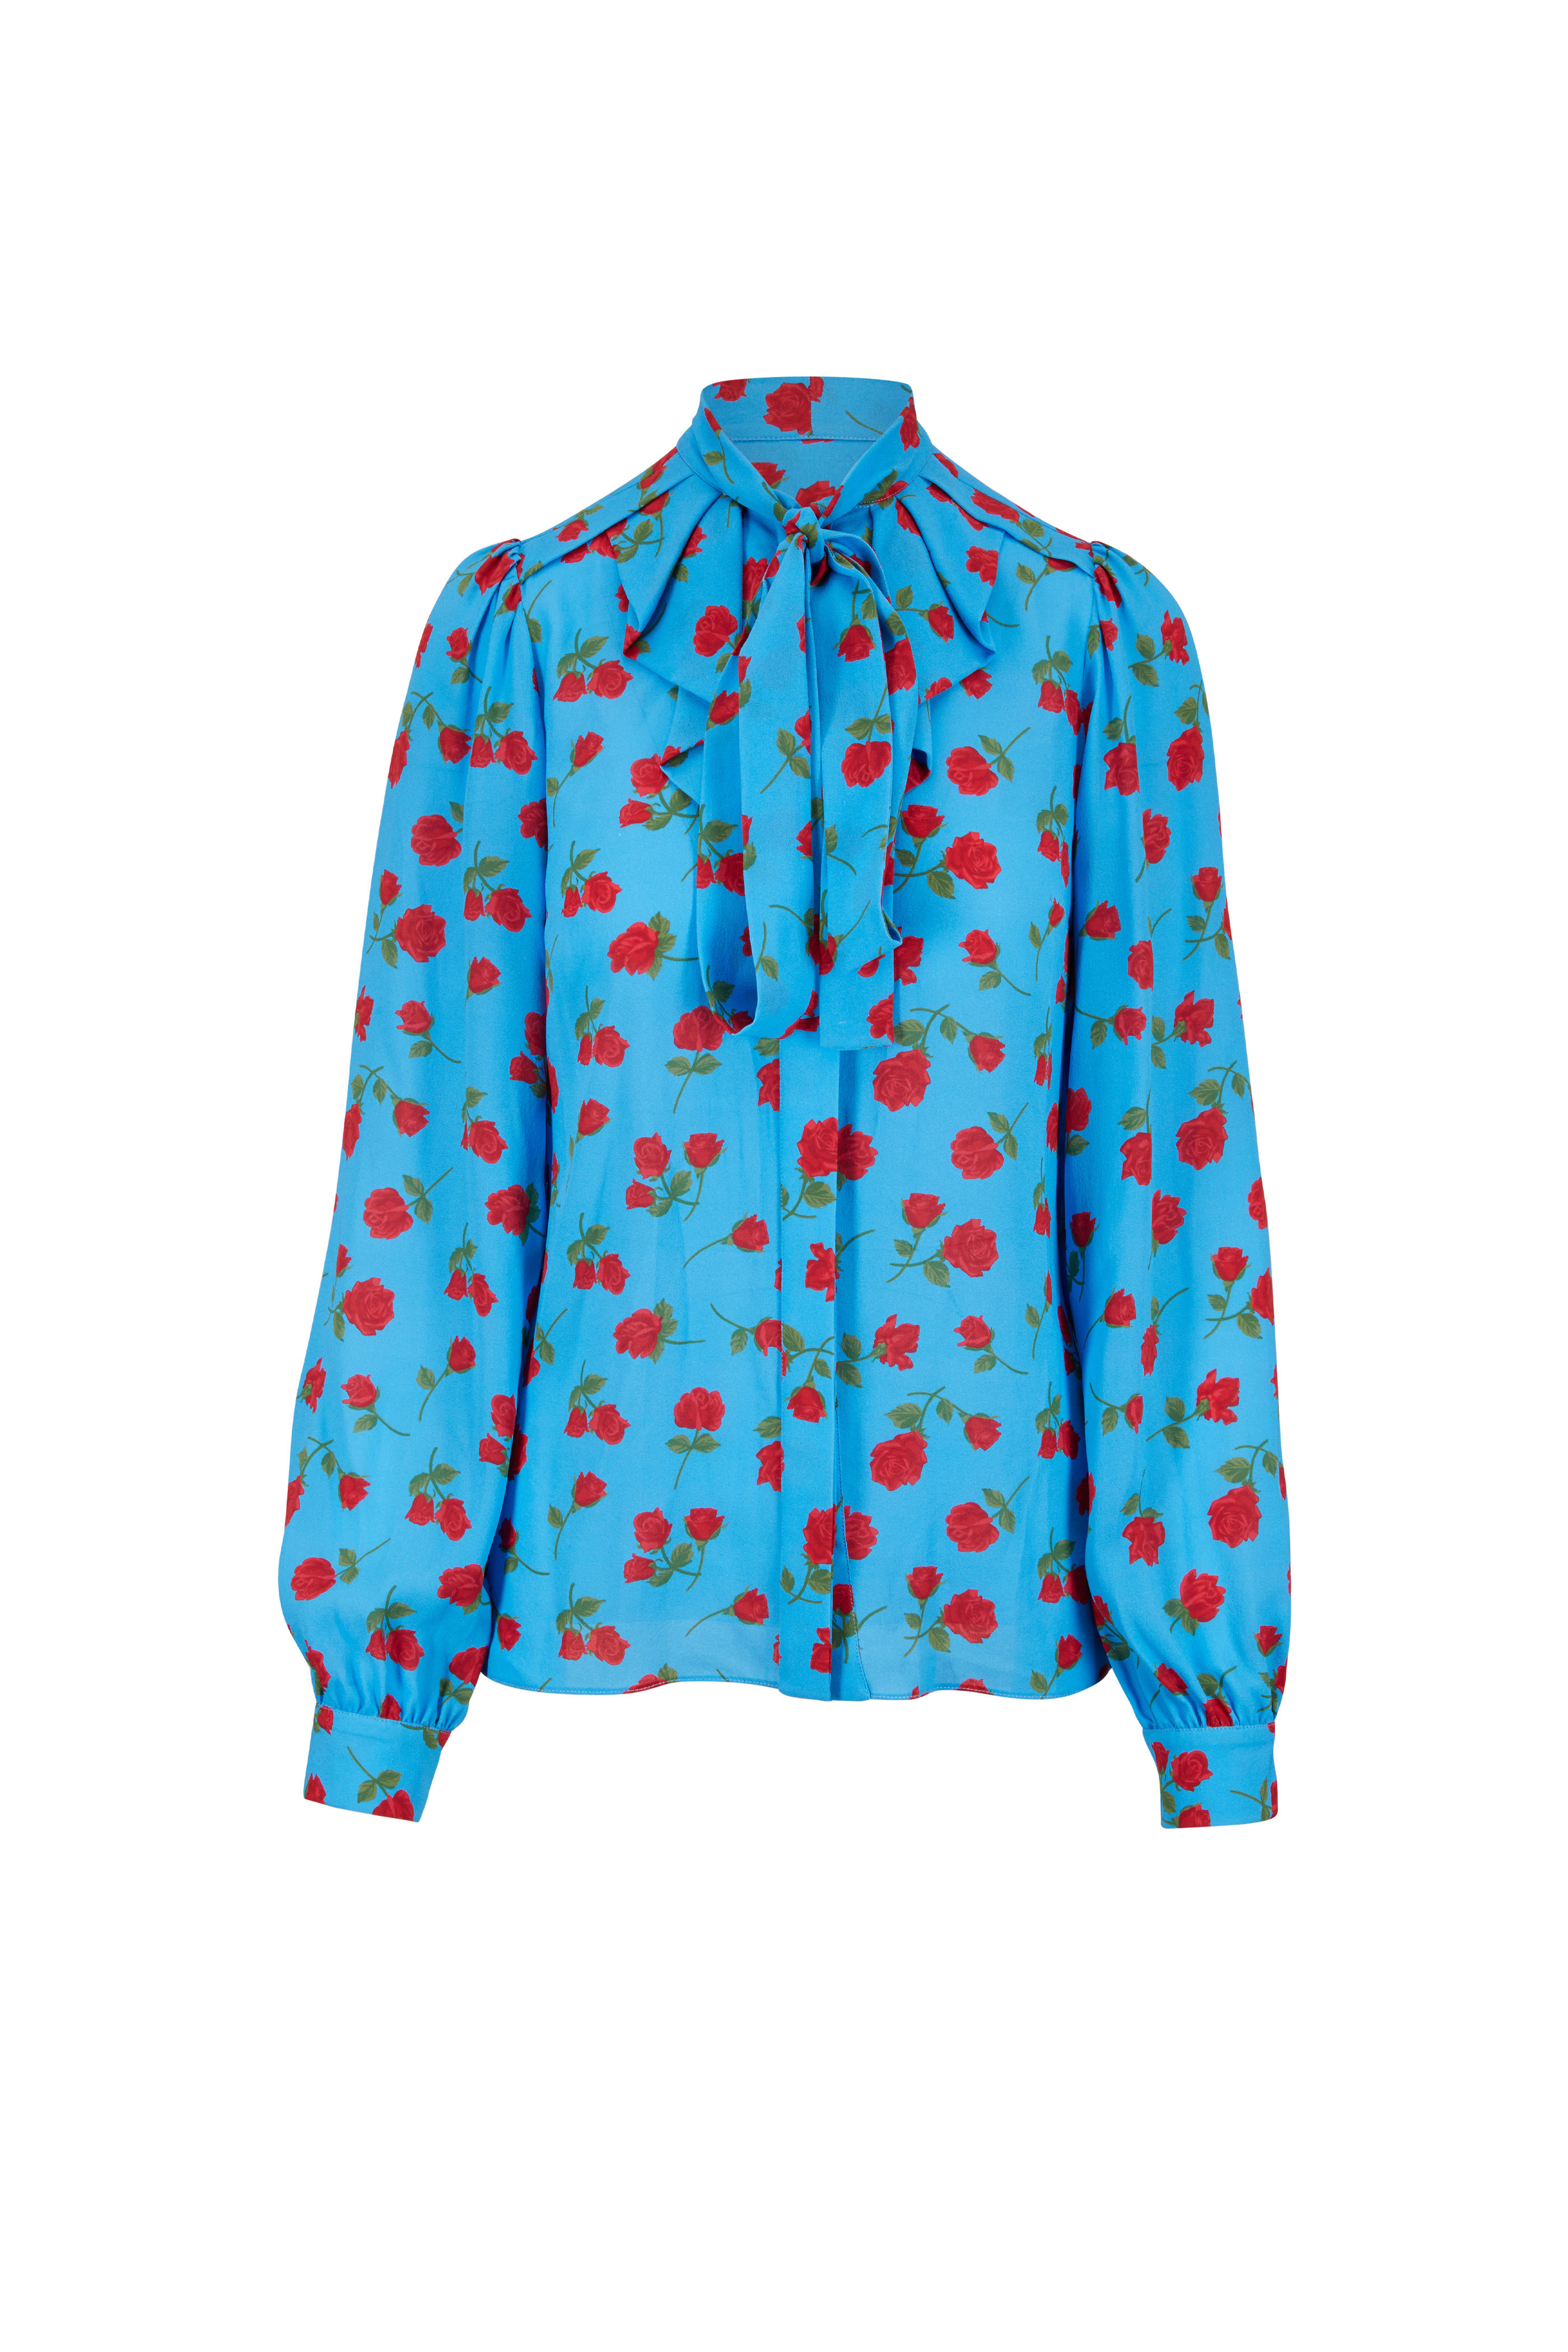 Michael Kors Collection - Blue   Red Roses Tie-Neck Silk Blouse ... 864088ff2fdff